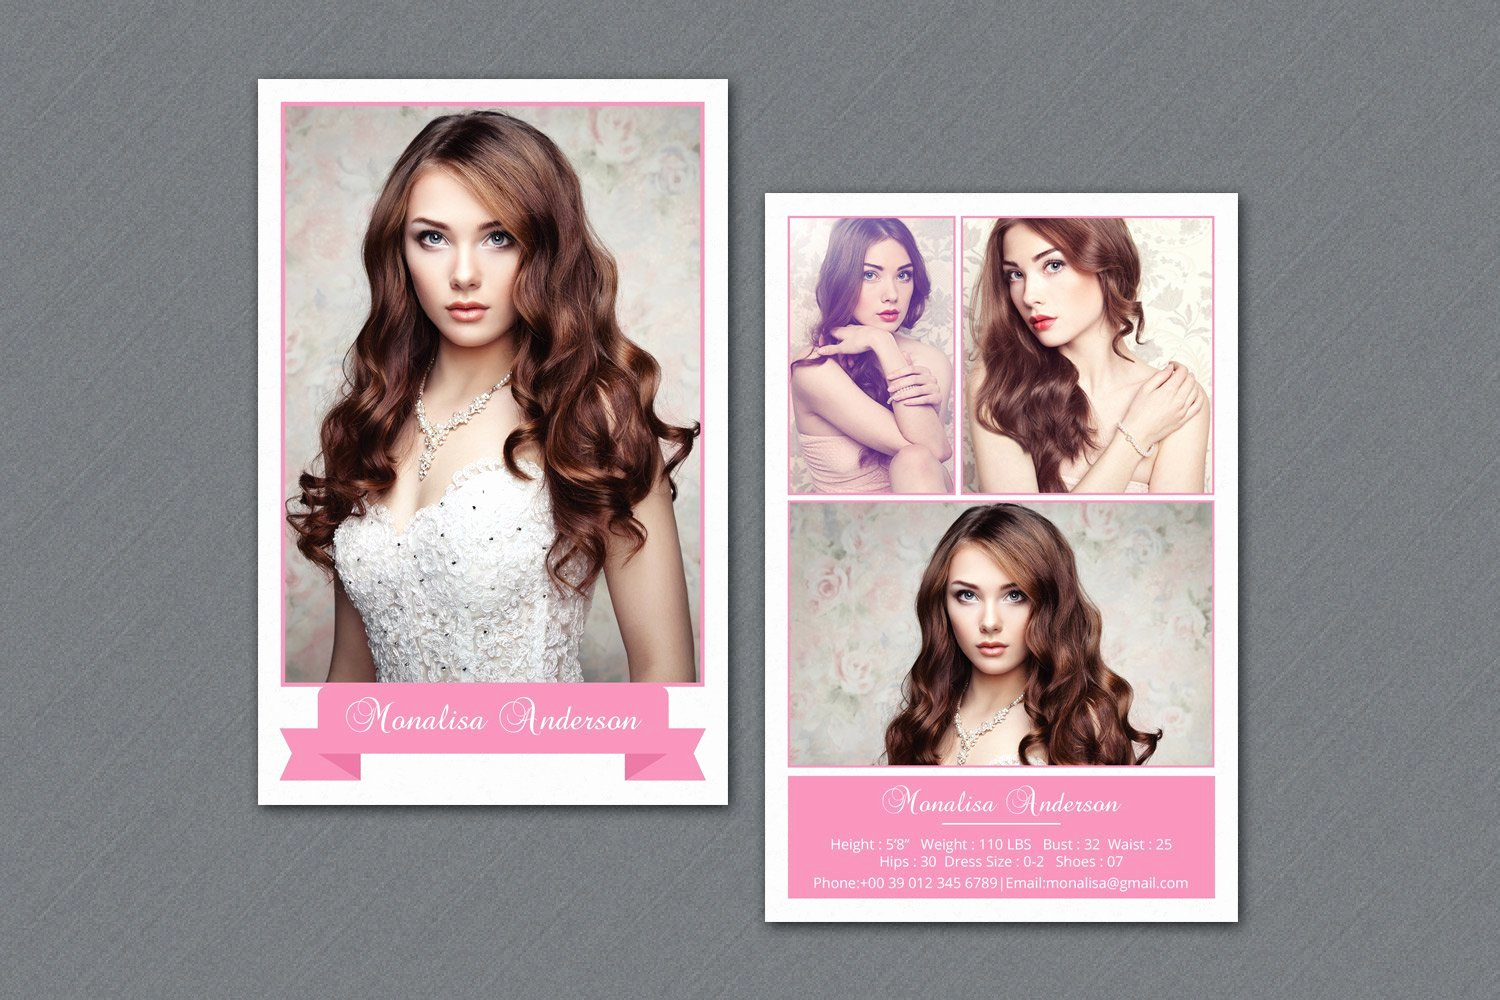 Free Comp Card Template Inspirational Fashion Model P Card V292 Flyer Templates Creative Market